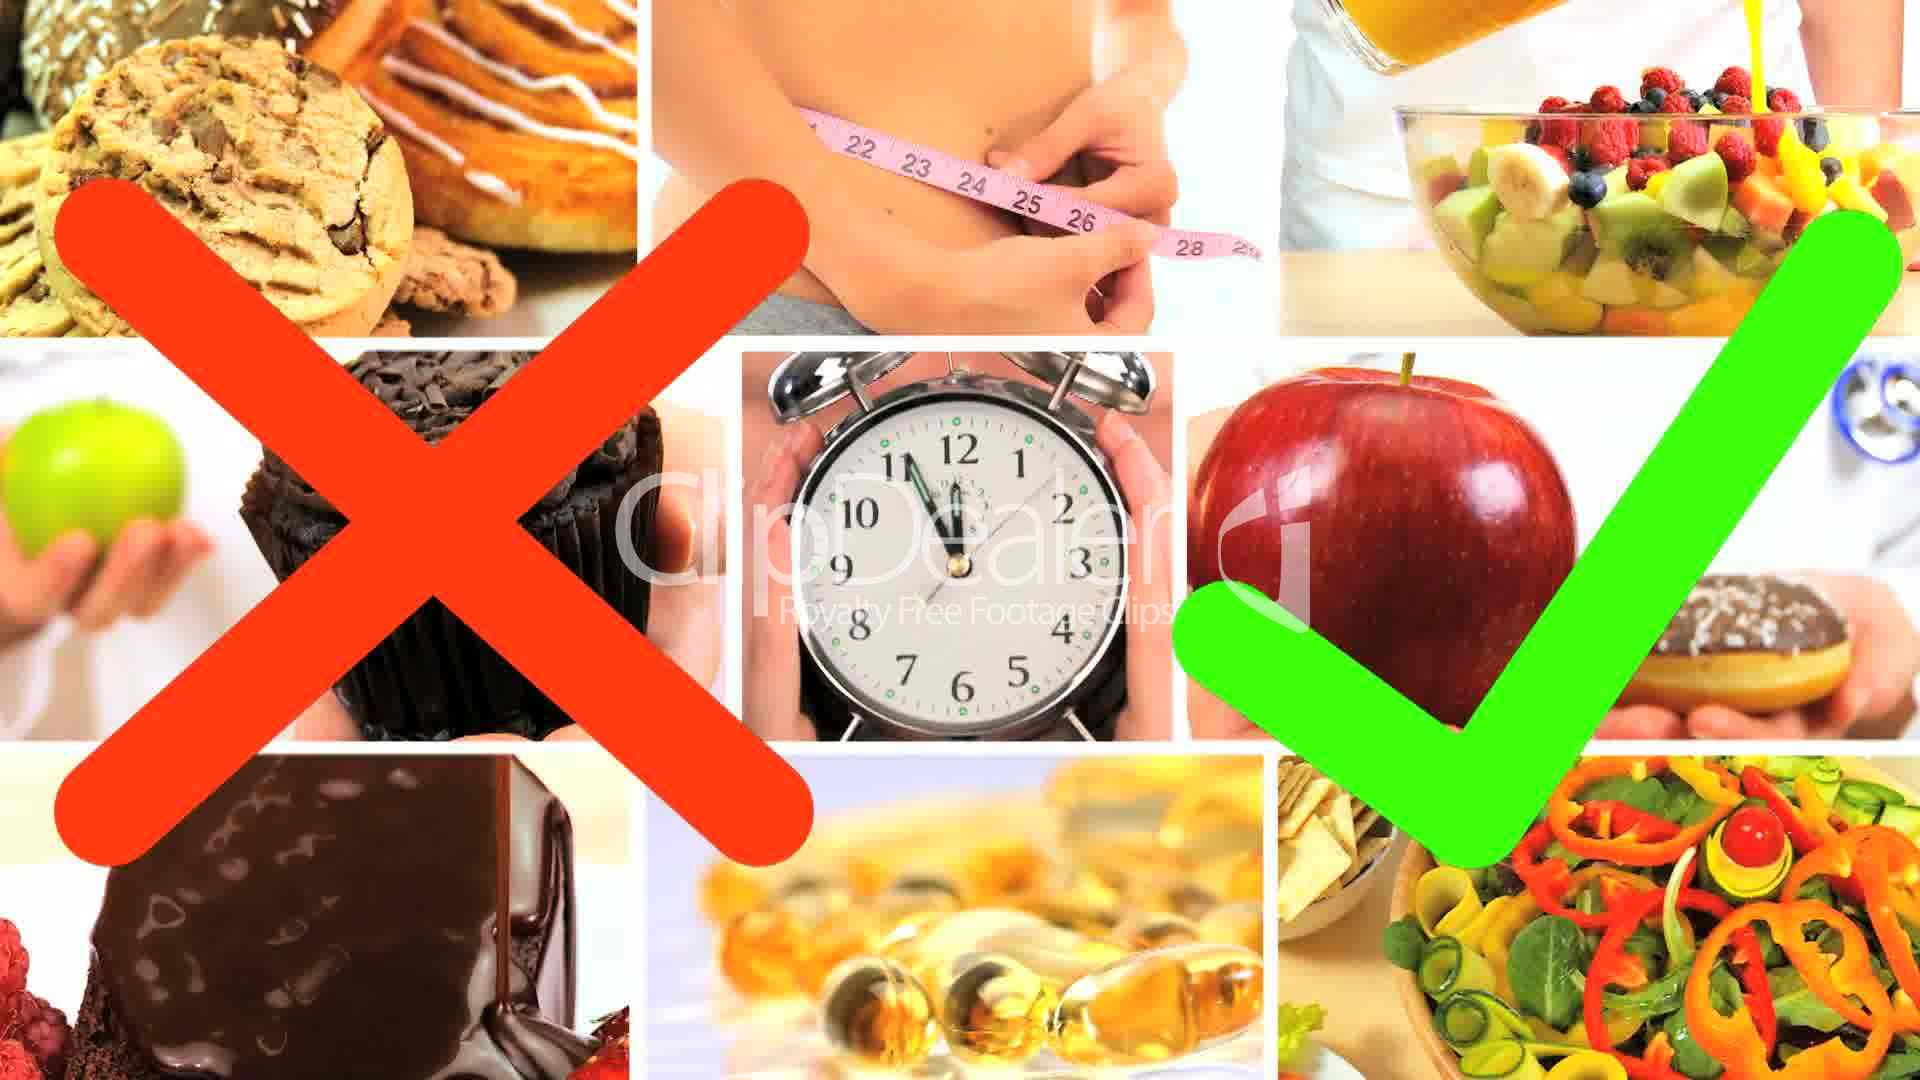 unhealthy diet essay This essay shall delve into the reasons why people choose to eat unhealthy diet and not do exercise some measures to motivate people to adopt a healthy lifestyle shall also be discussed the fast paced life of today is the most common cause of this habit.